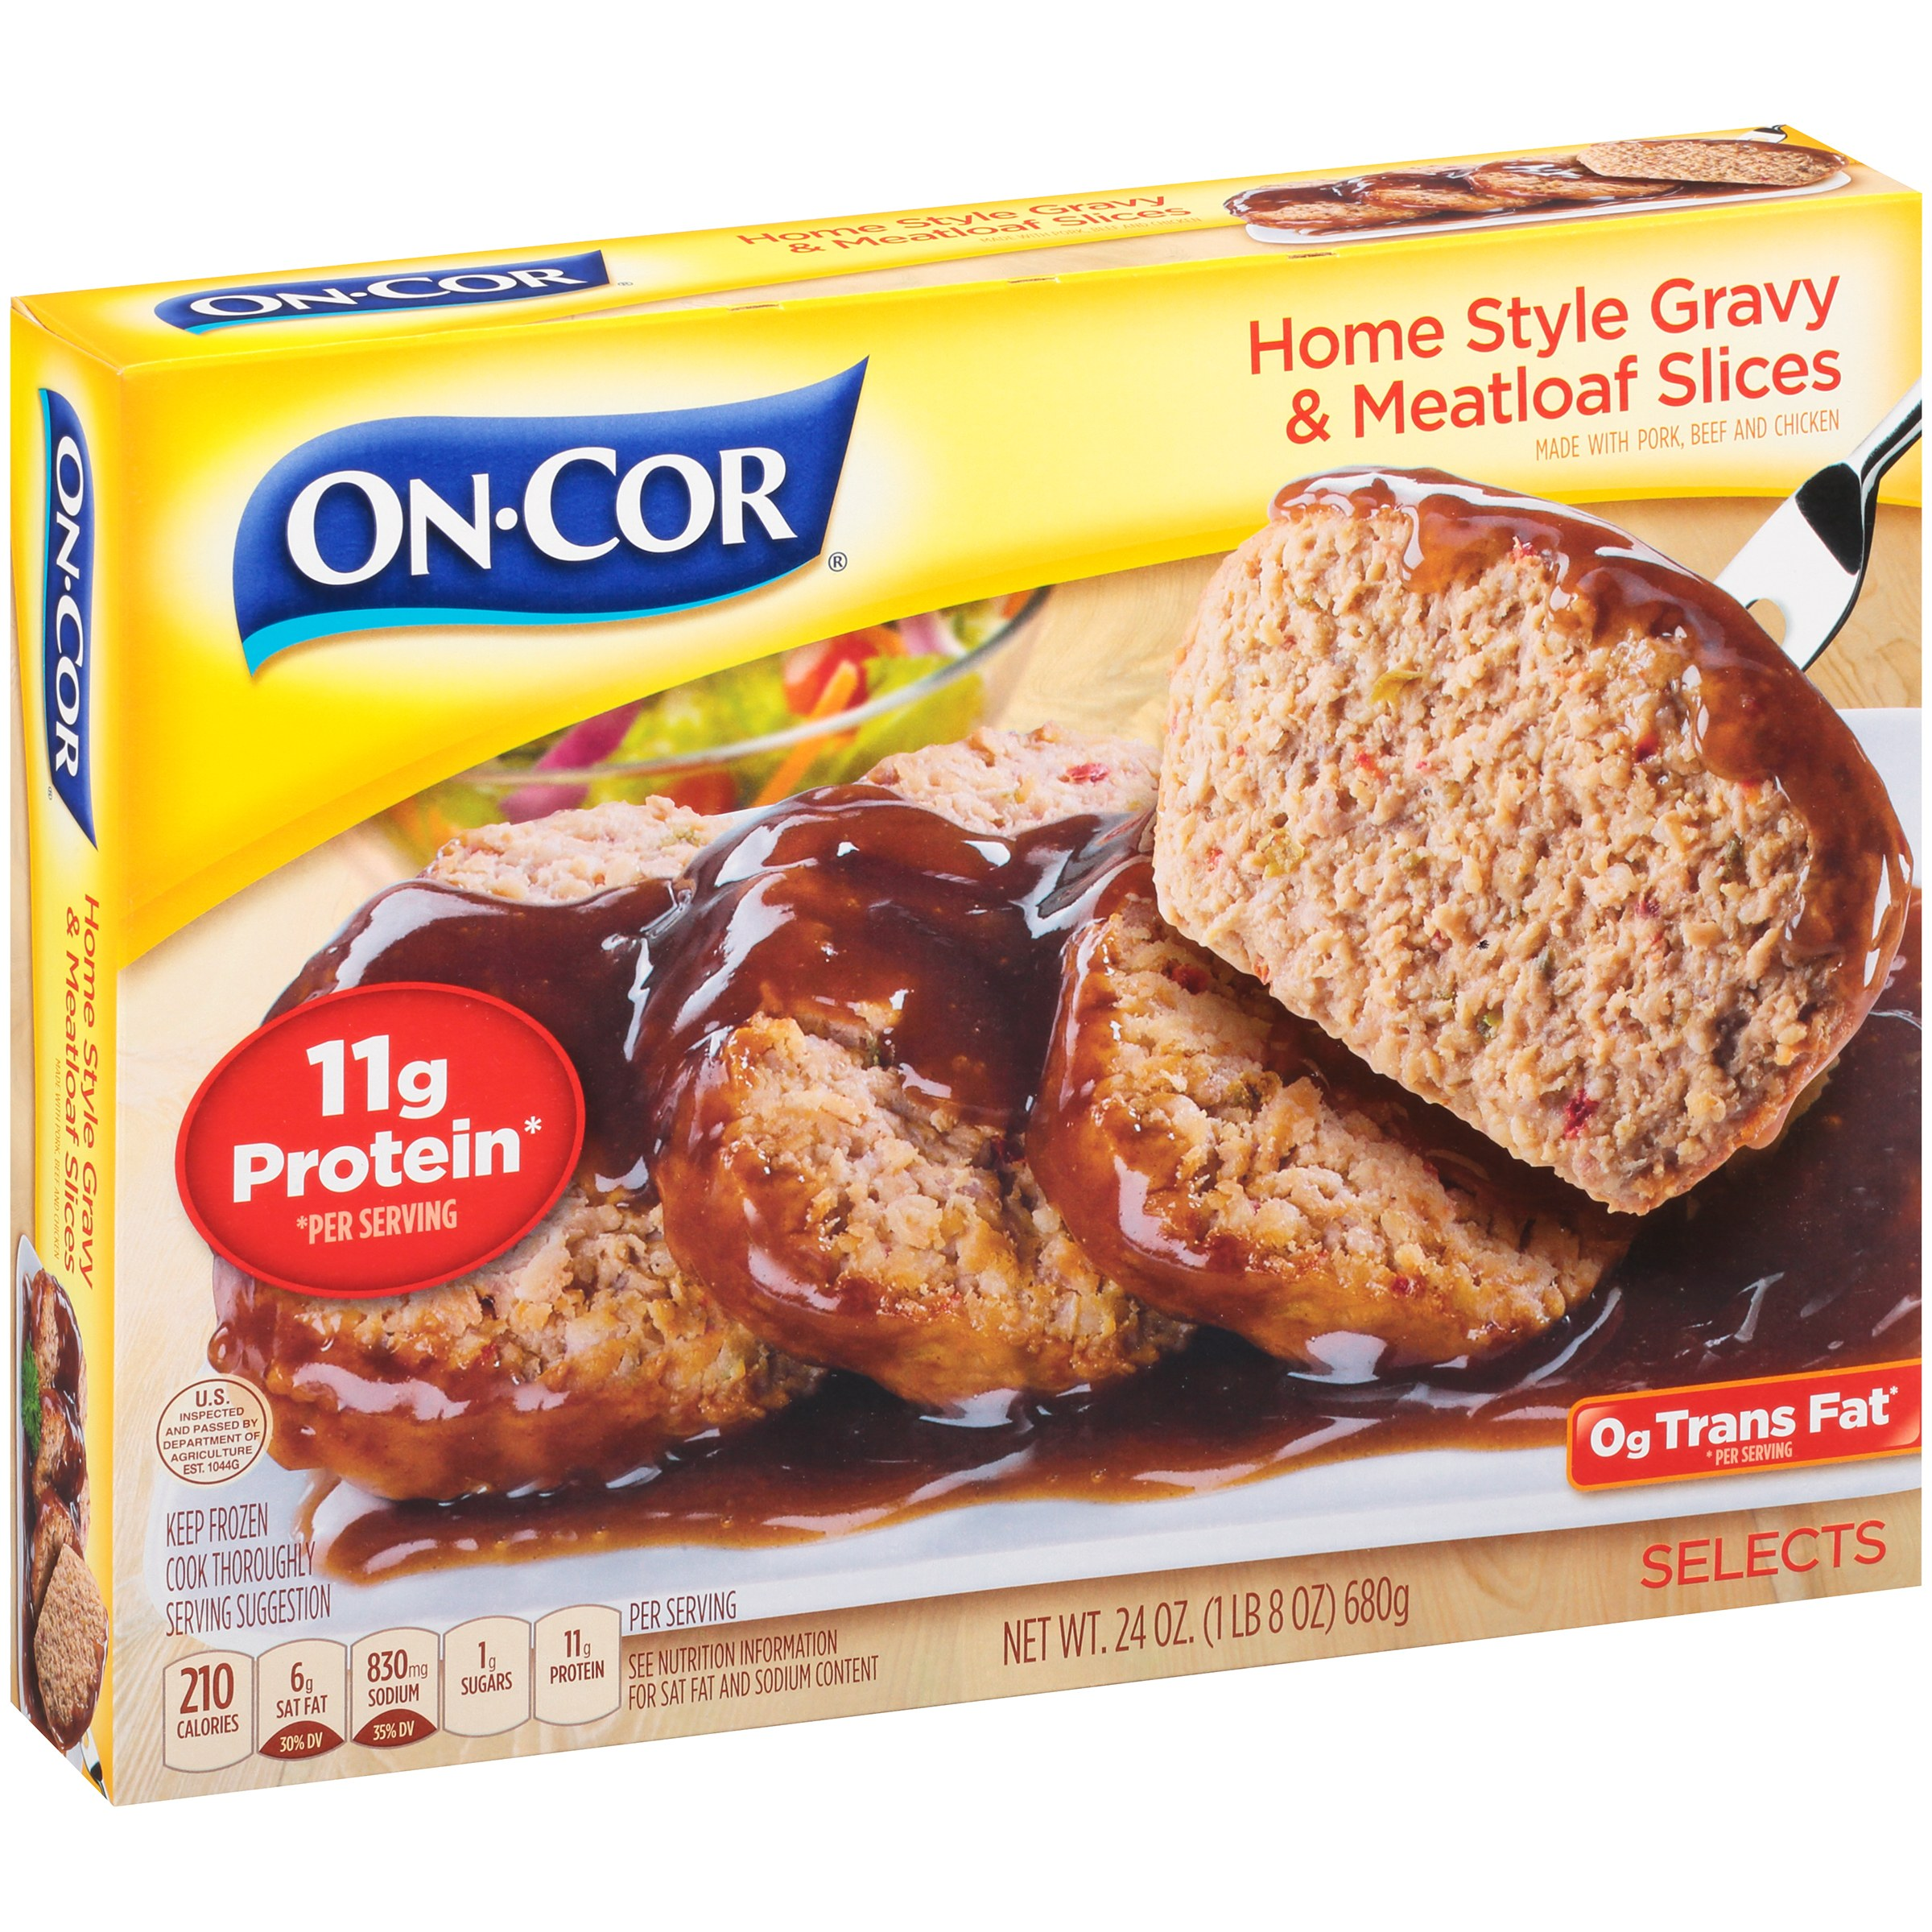 Image of On-Cor ® Home Style Gravy & Meatloaf Slices 24 oz. Box